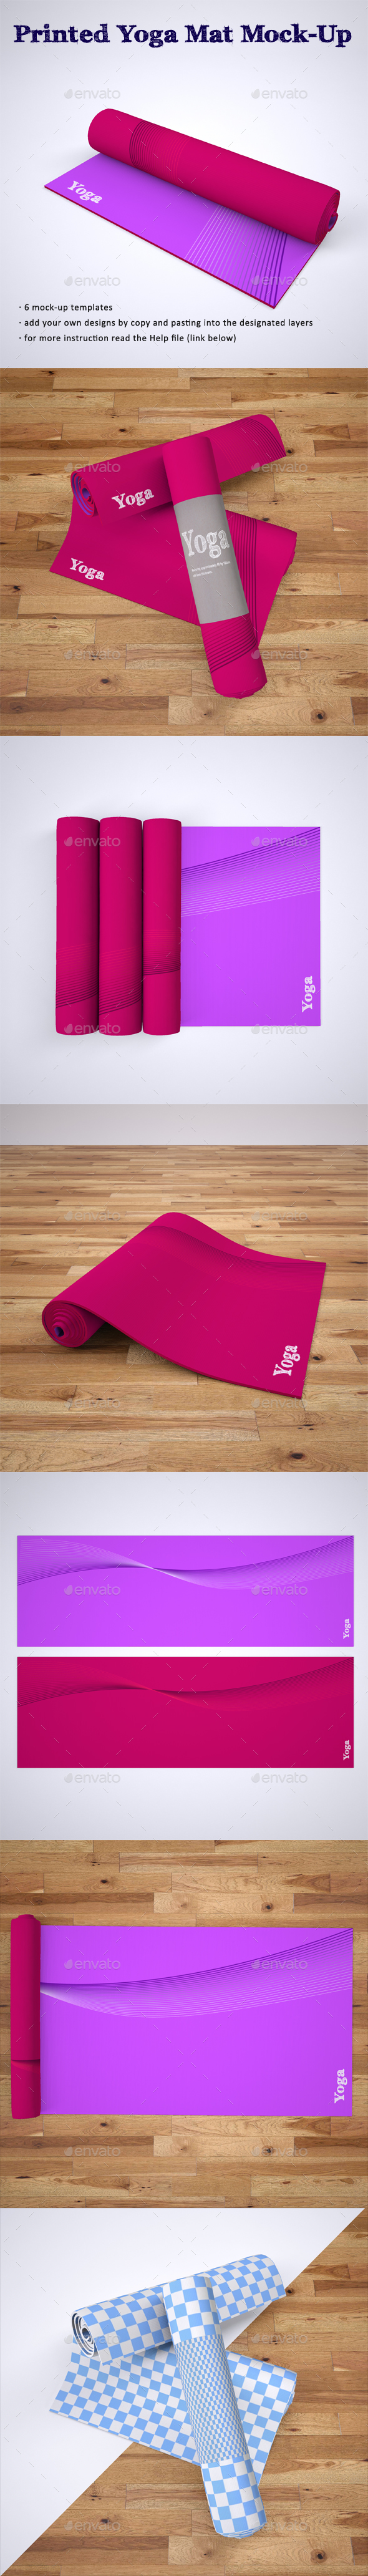 Printed Yoga Mat Exercise Rug Mock-Up - Miscellaneous Print